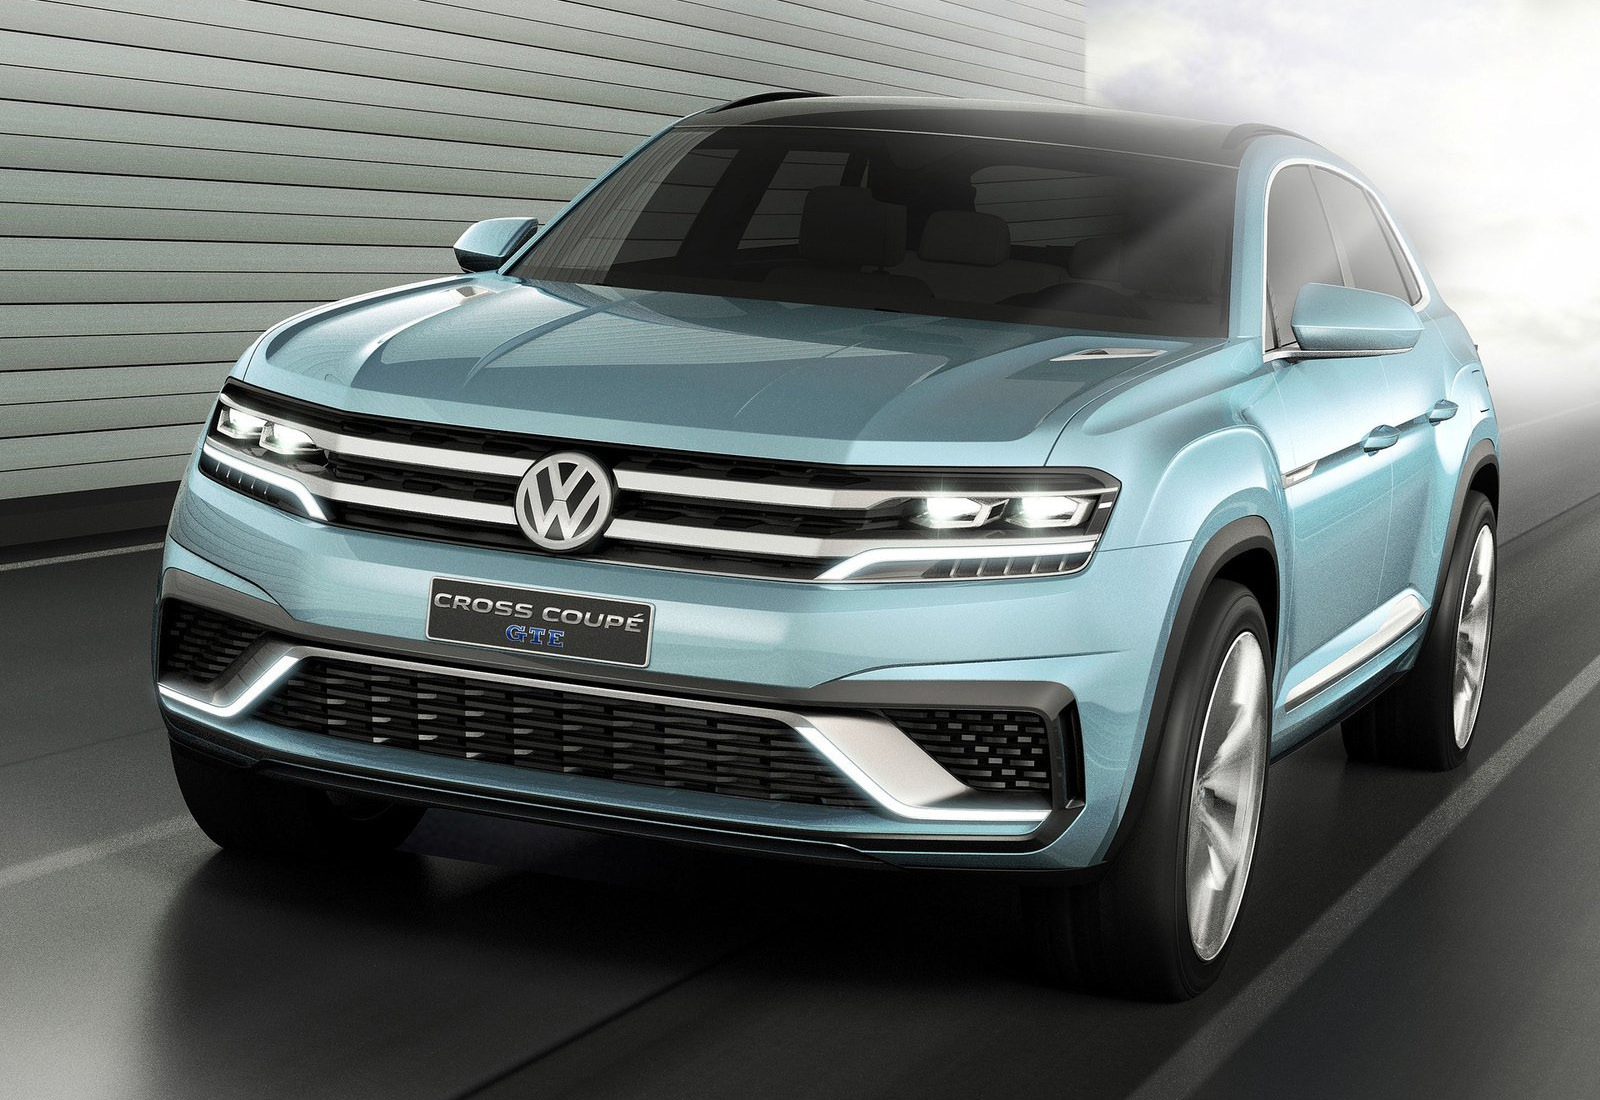 2019 Volkswagen Cross Coupe Concept photo - 2